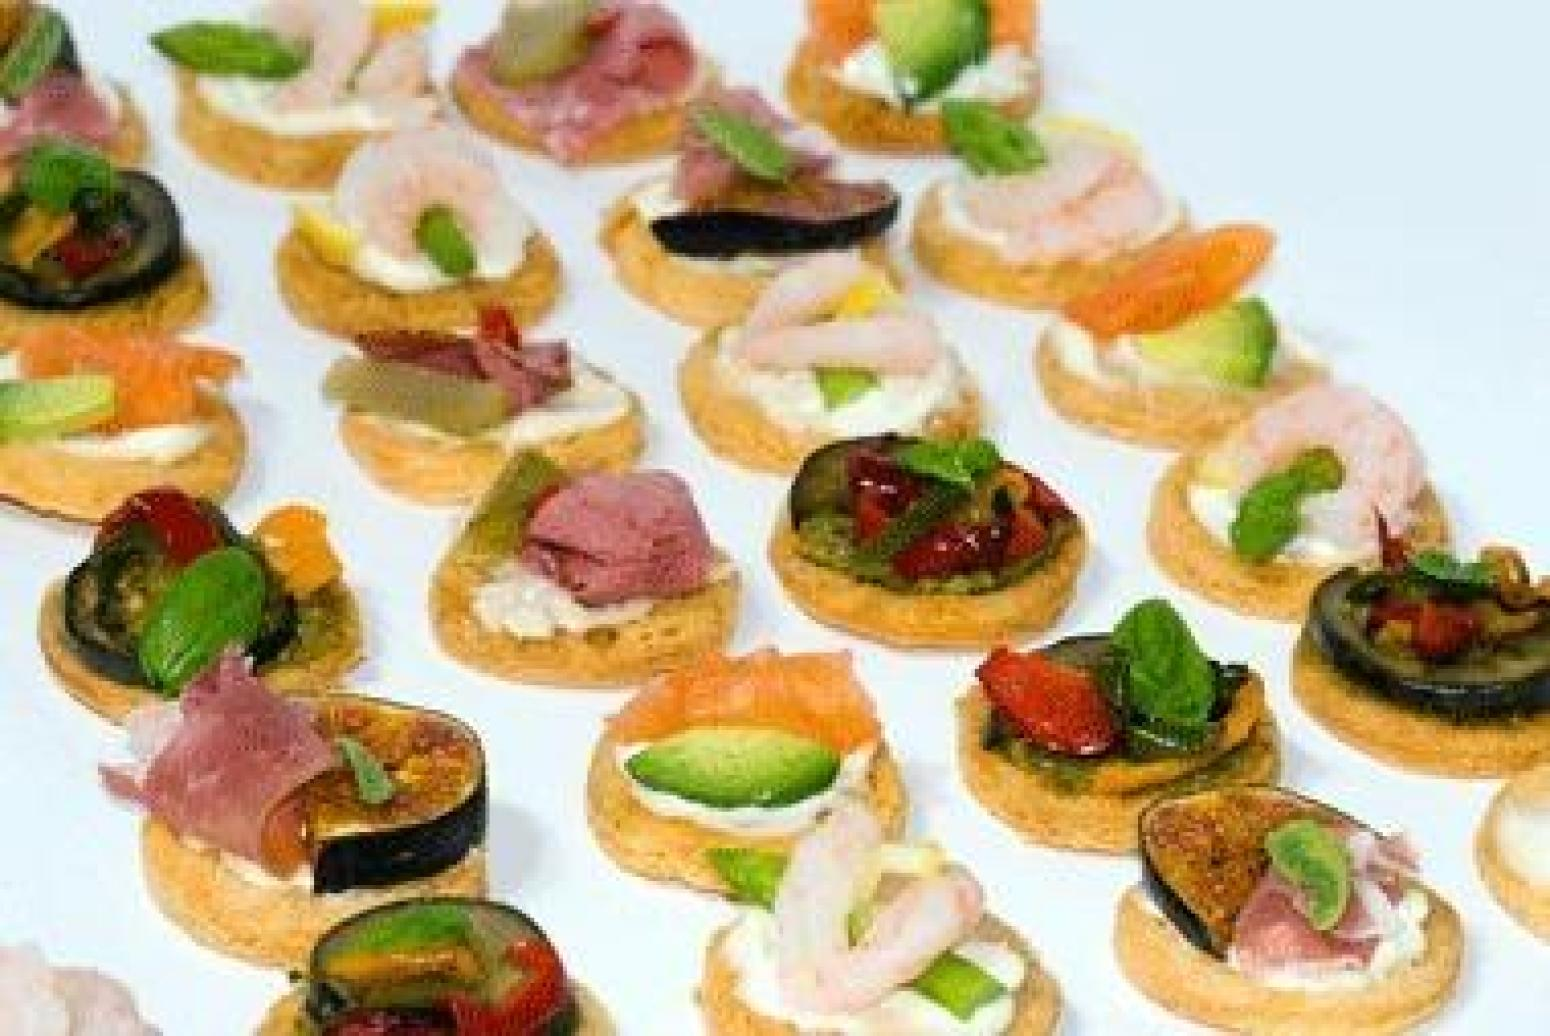 Canap s recipe 101 just a pinch recipes for Summer canape ideas